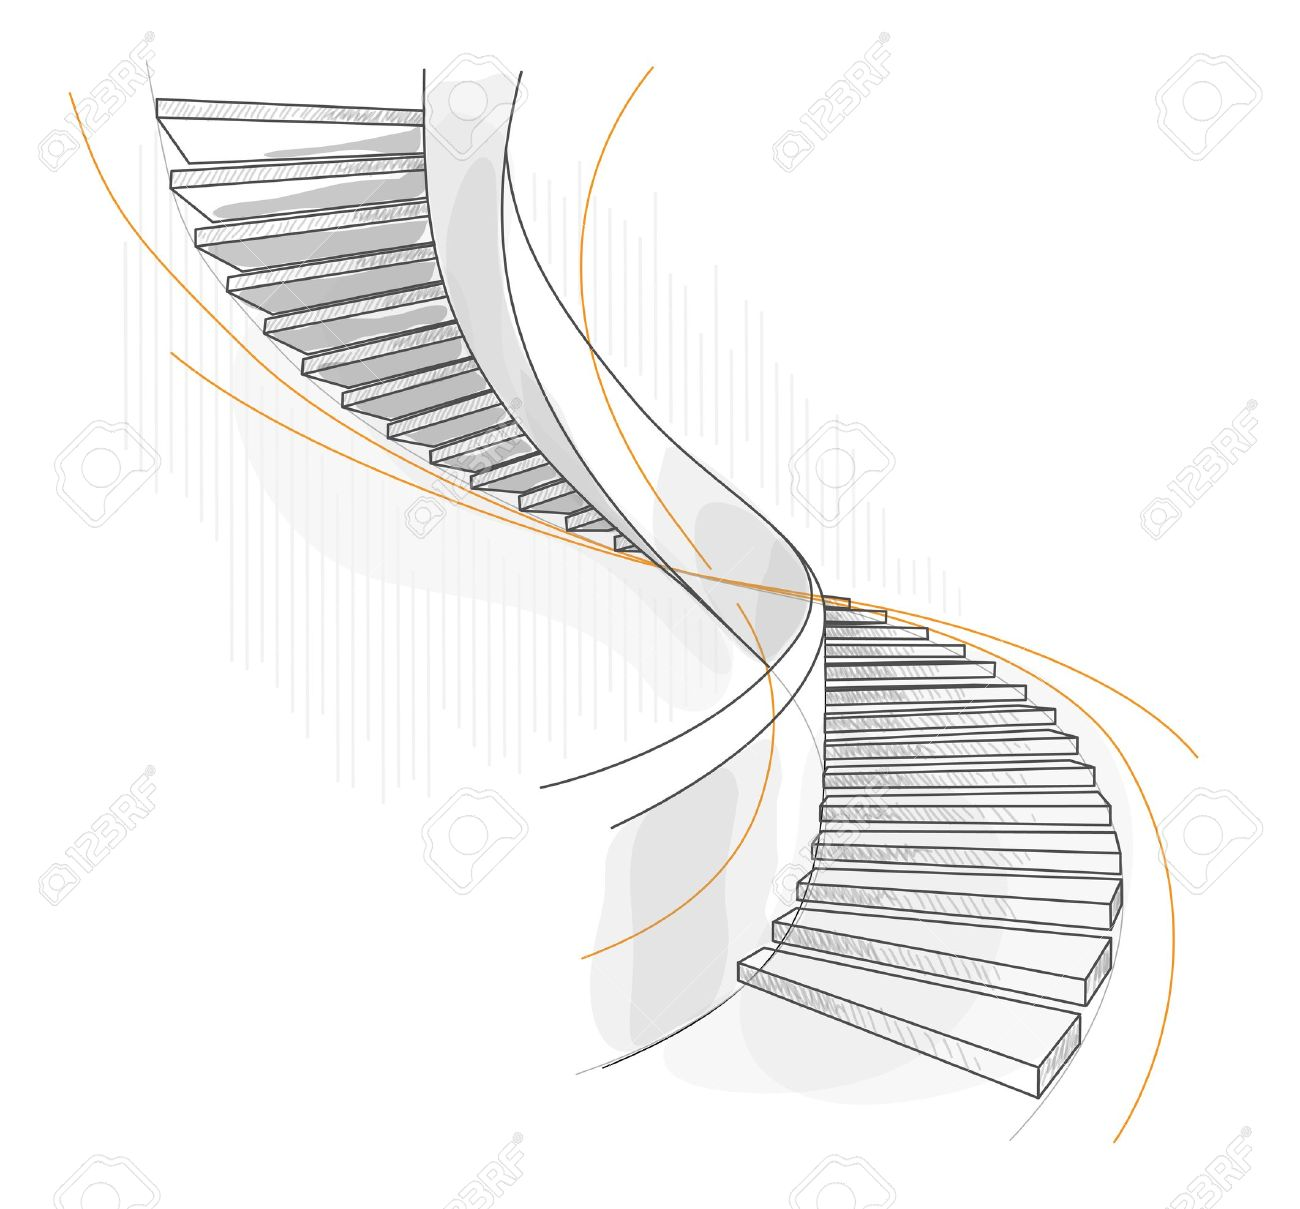 Sketch Of A Spiral Staircase. Vector Illustration. Royalty Free.